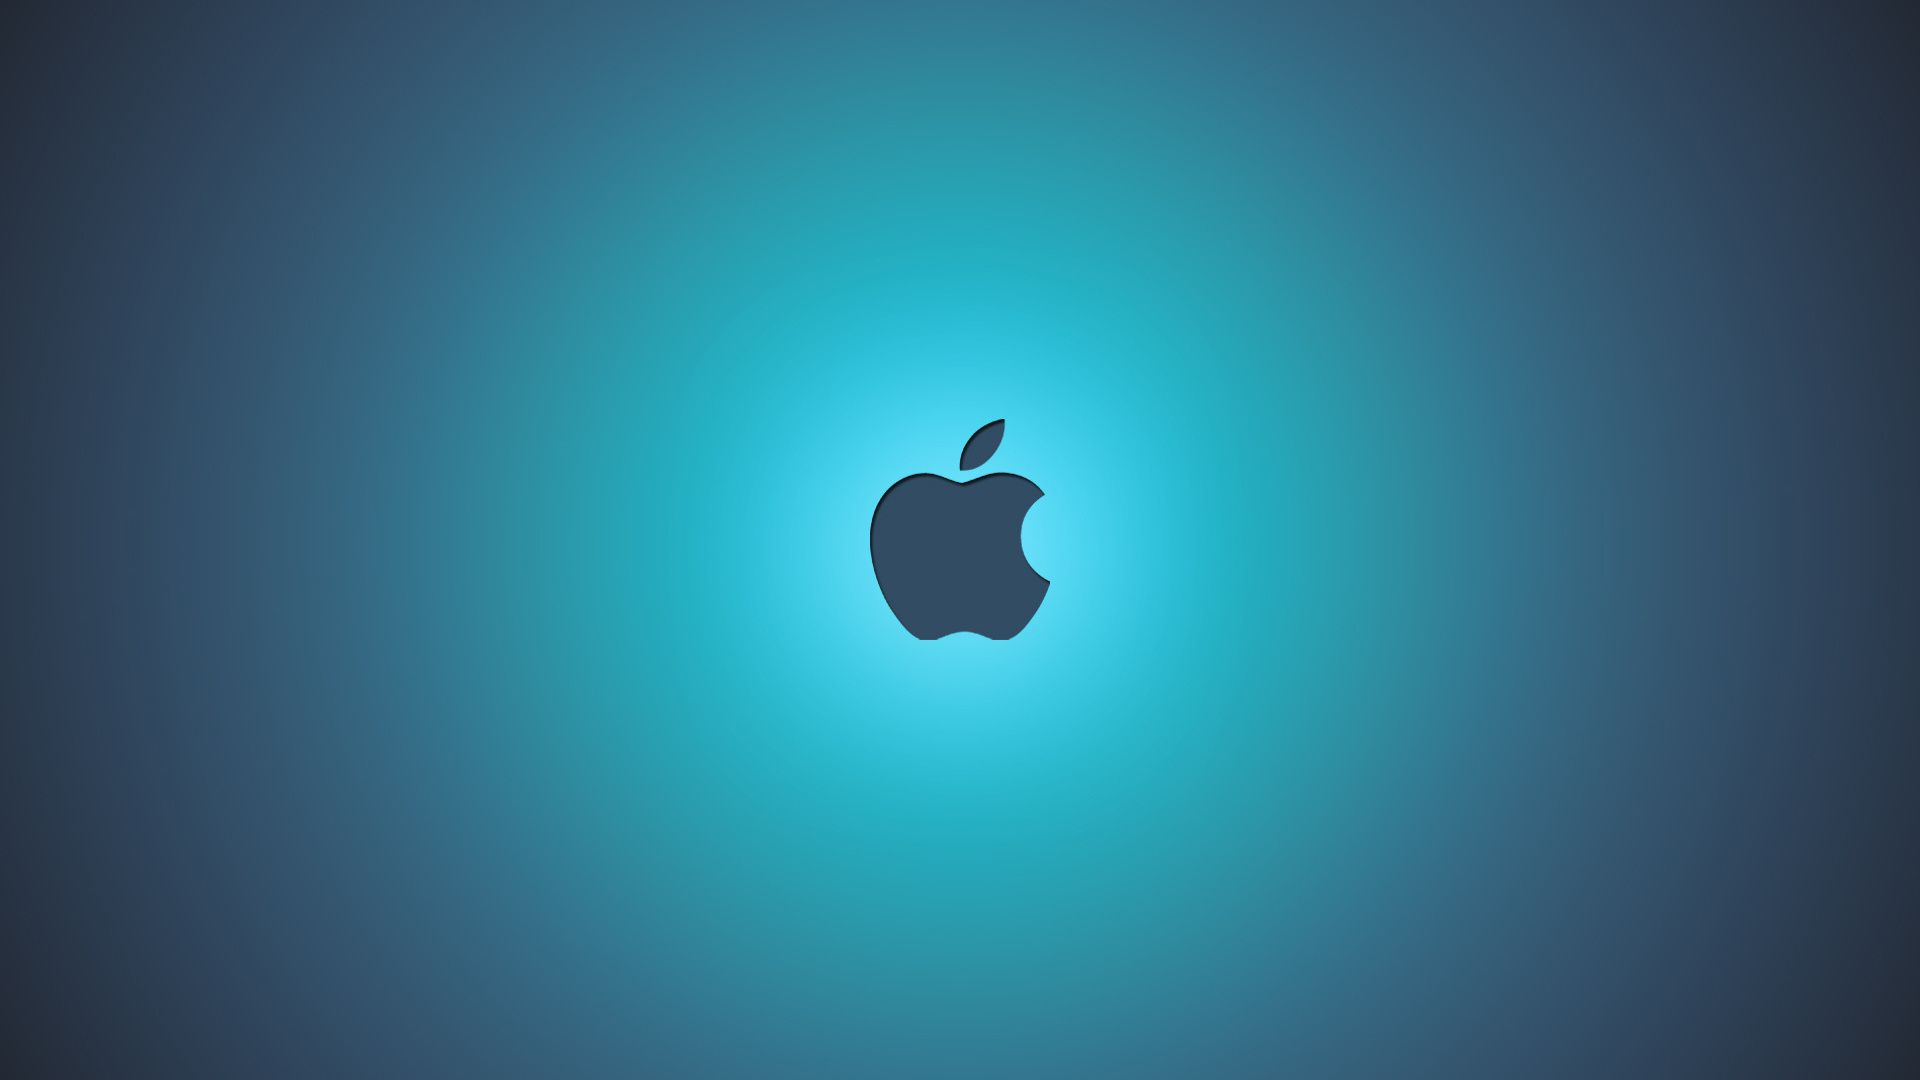 Hd wallpaper macbook - Search Results For Apple Wallpaper Macbook Pro Adorable Wallpapers